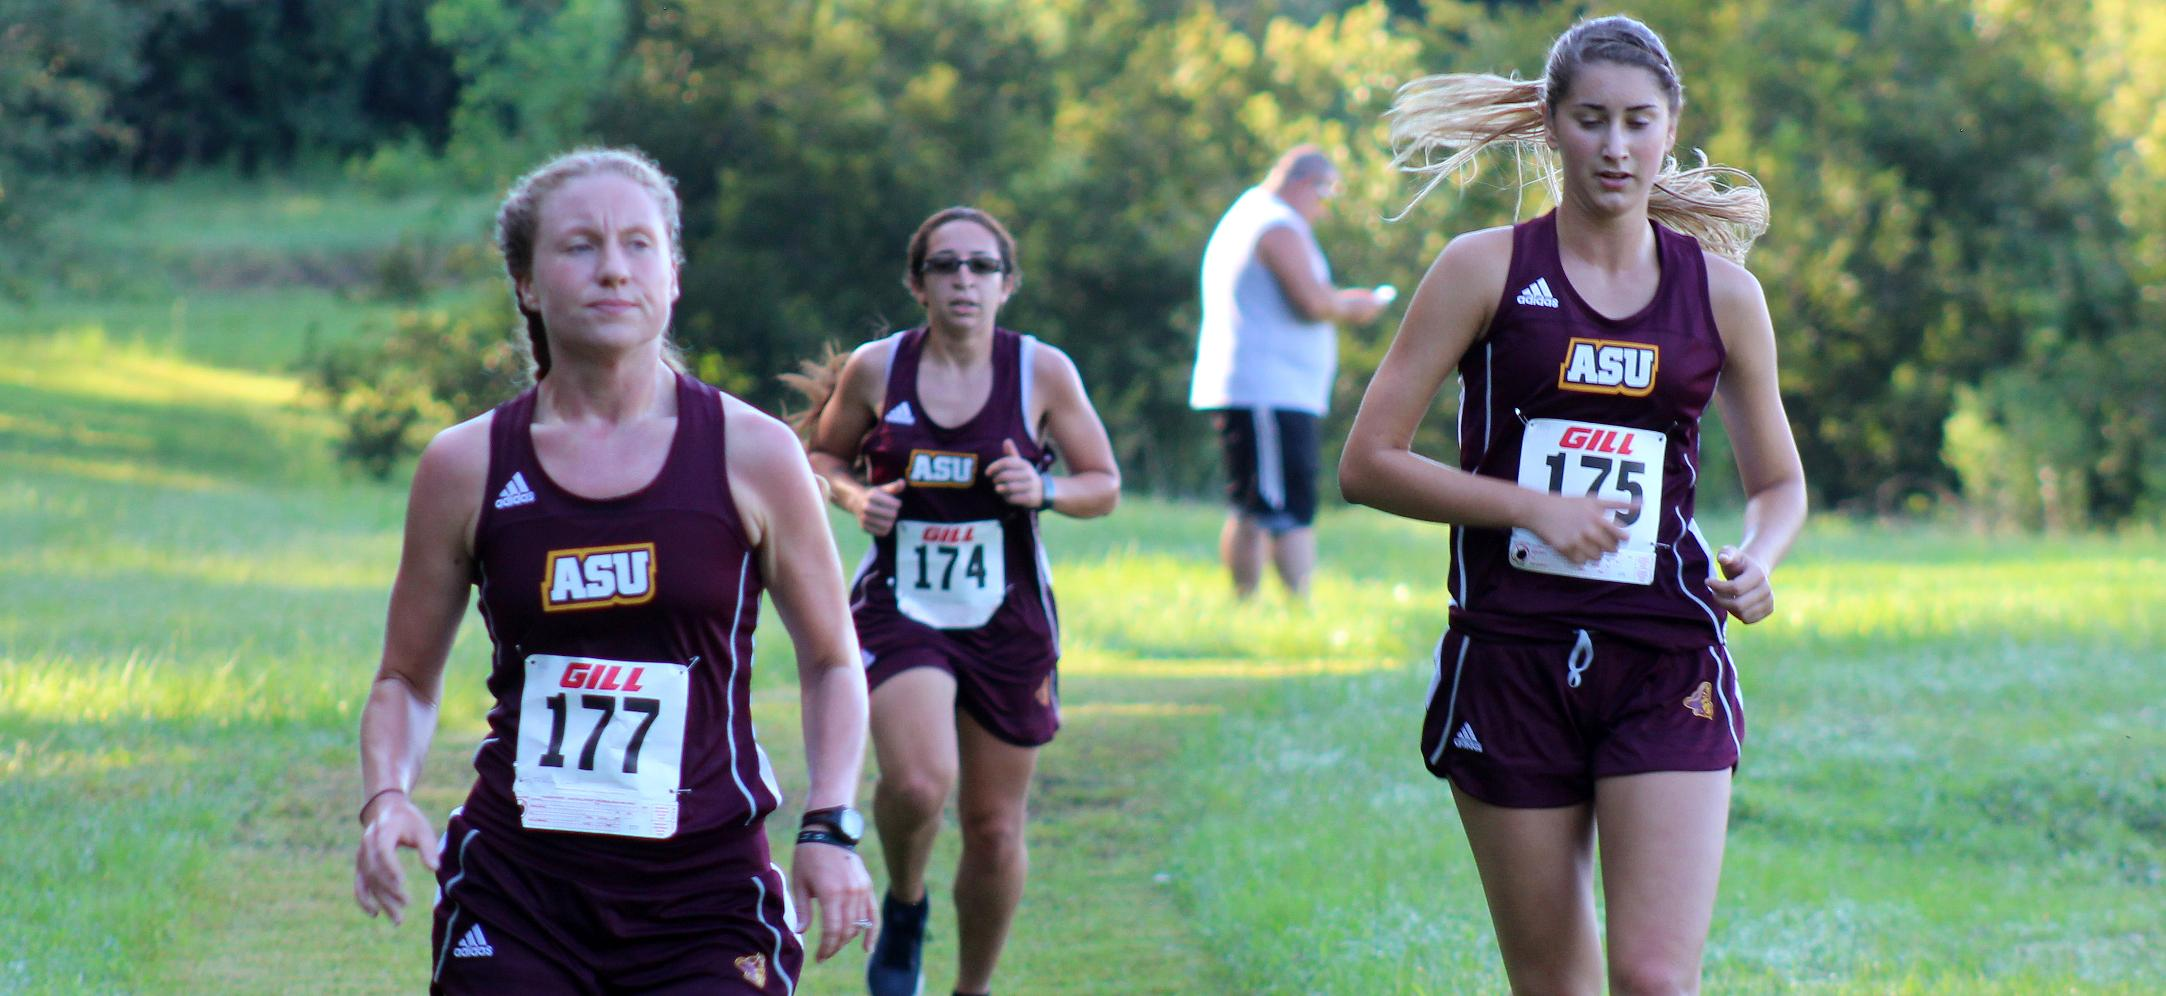 Women's Cross Country Captures First Meet Since Reinstatement, Wins Julius Johnson Invitational